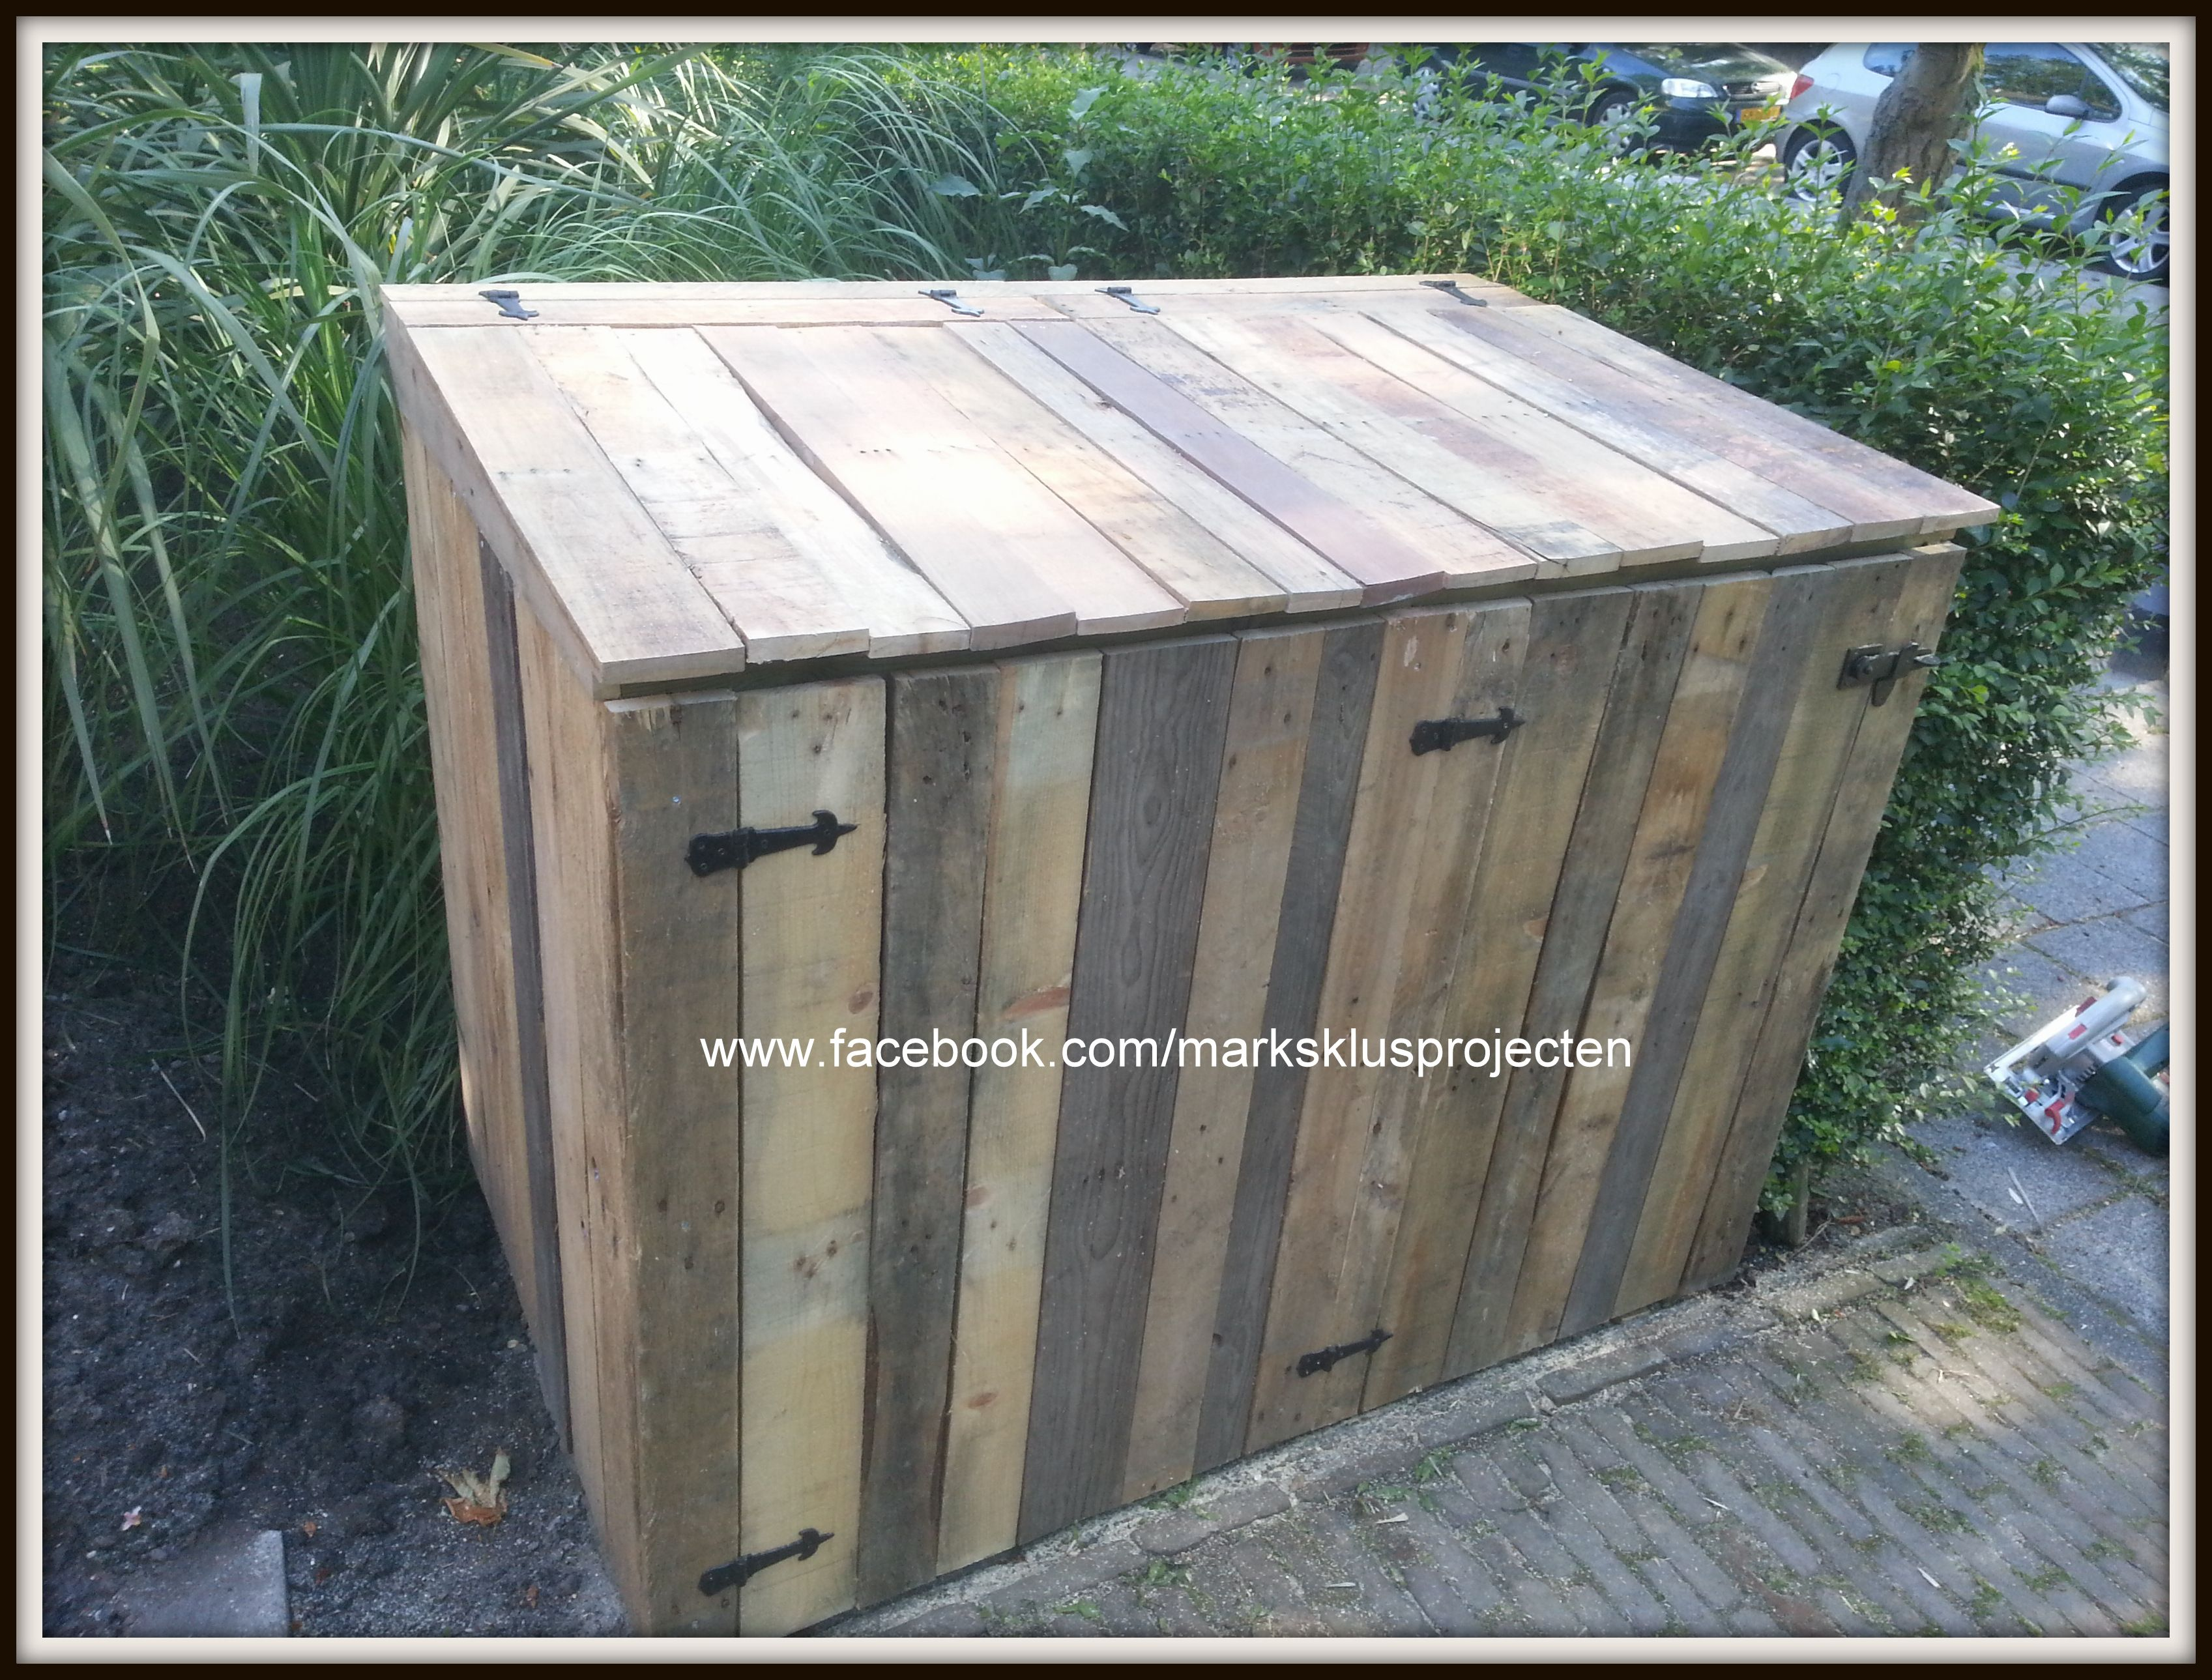 Wheelie Bin Cover Made Of Recycled Pallet Wood And Impregnated Beams With Images 1001 Pallets Pallet Outdoor Bin Store Garden